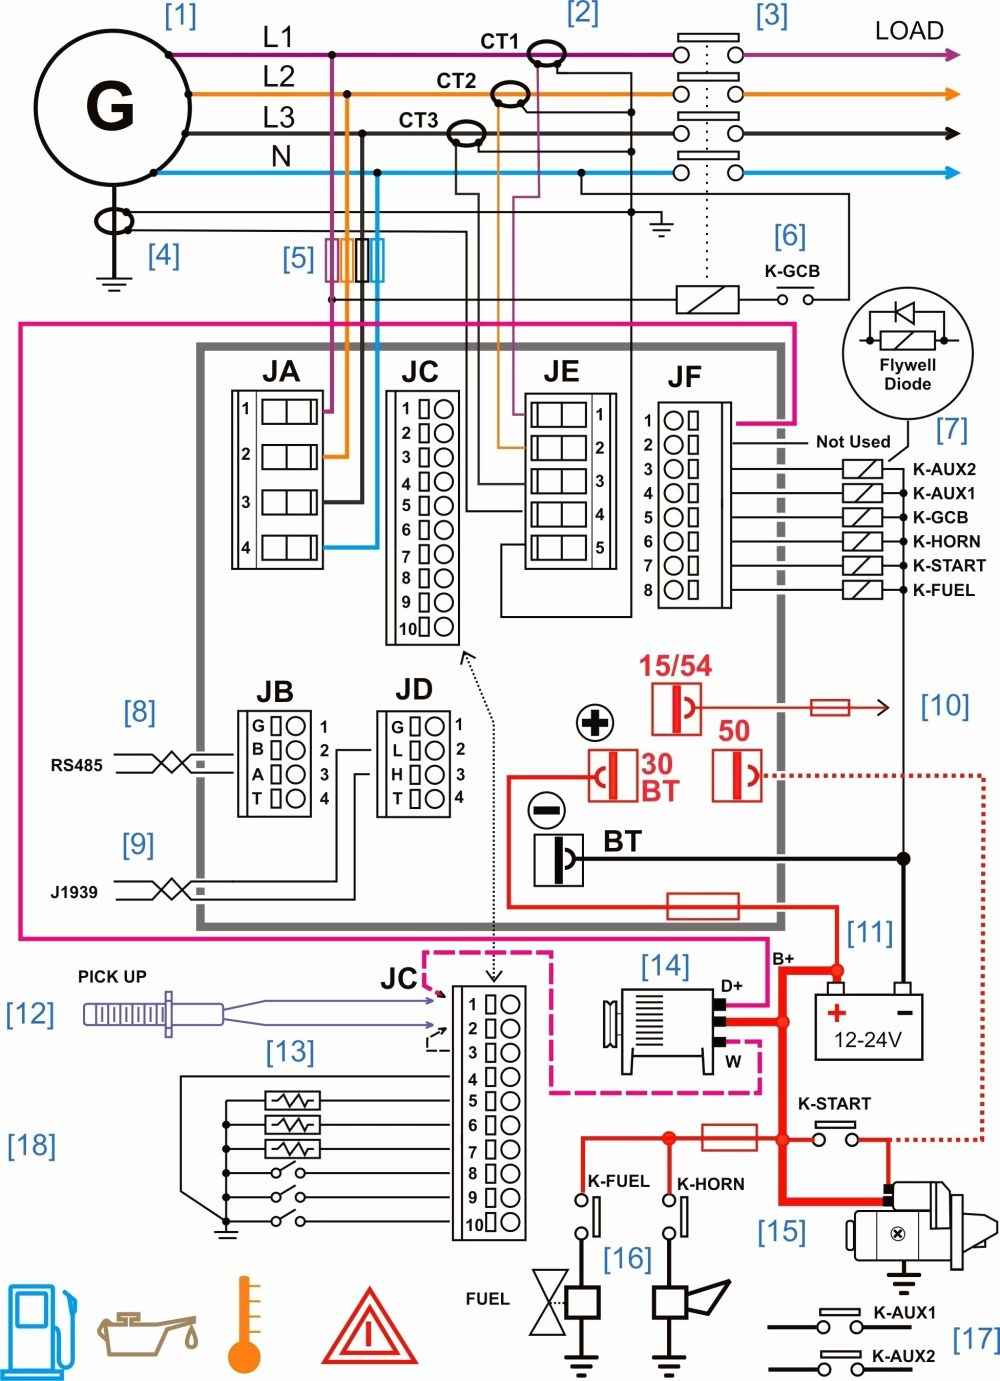 medium resolution of 1986 chevy truck radio wiring diagram save audi a4 cd player wiring diagram of 1986 chevy